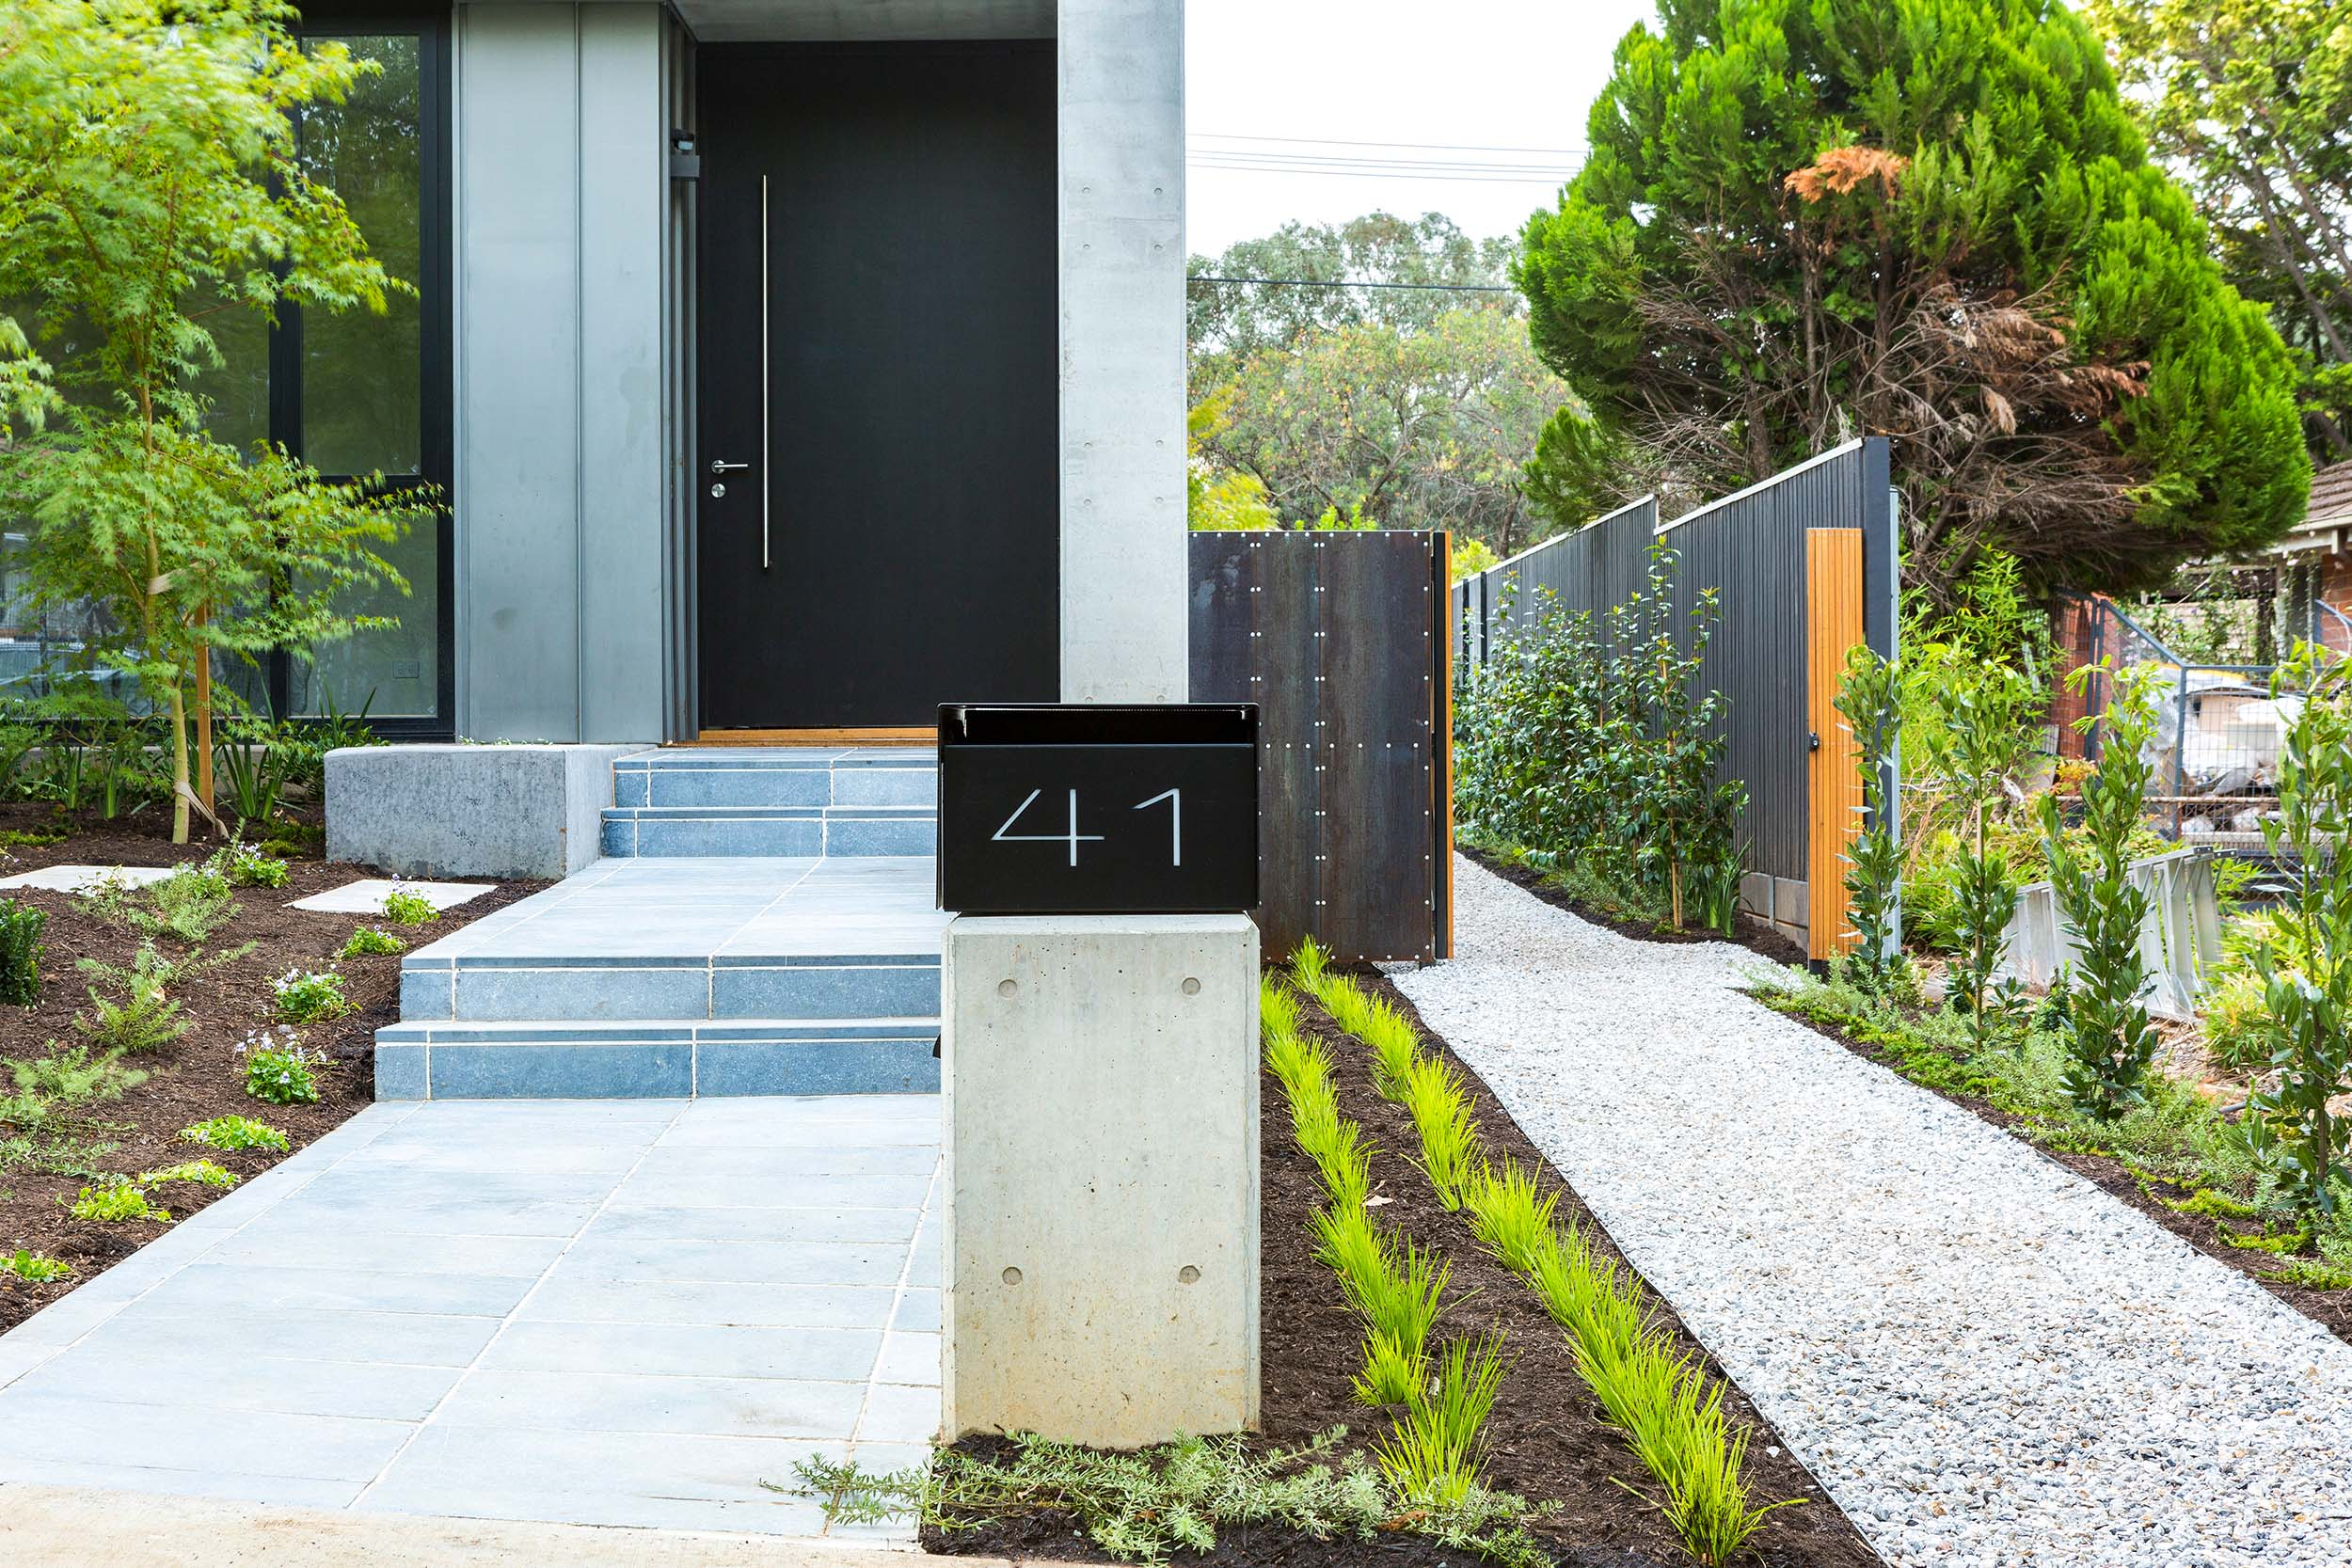 Stone-Pavers-and-Tiles-Outdoor Gallery pantera-02